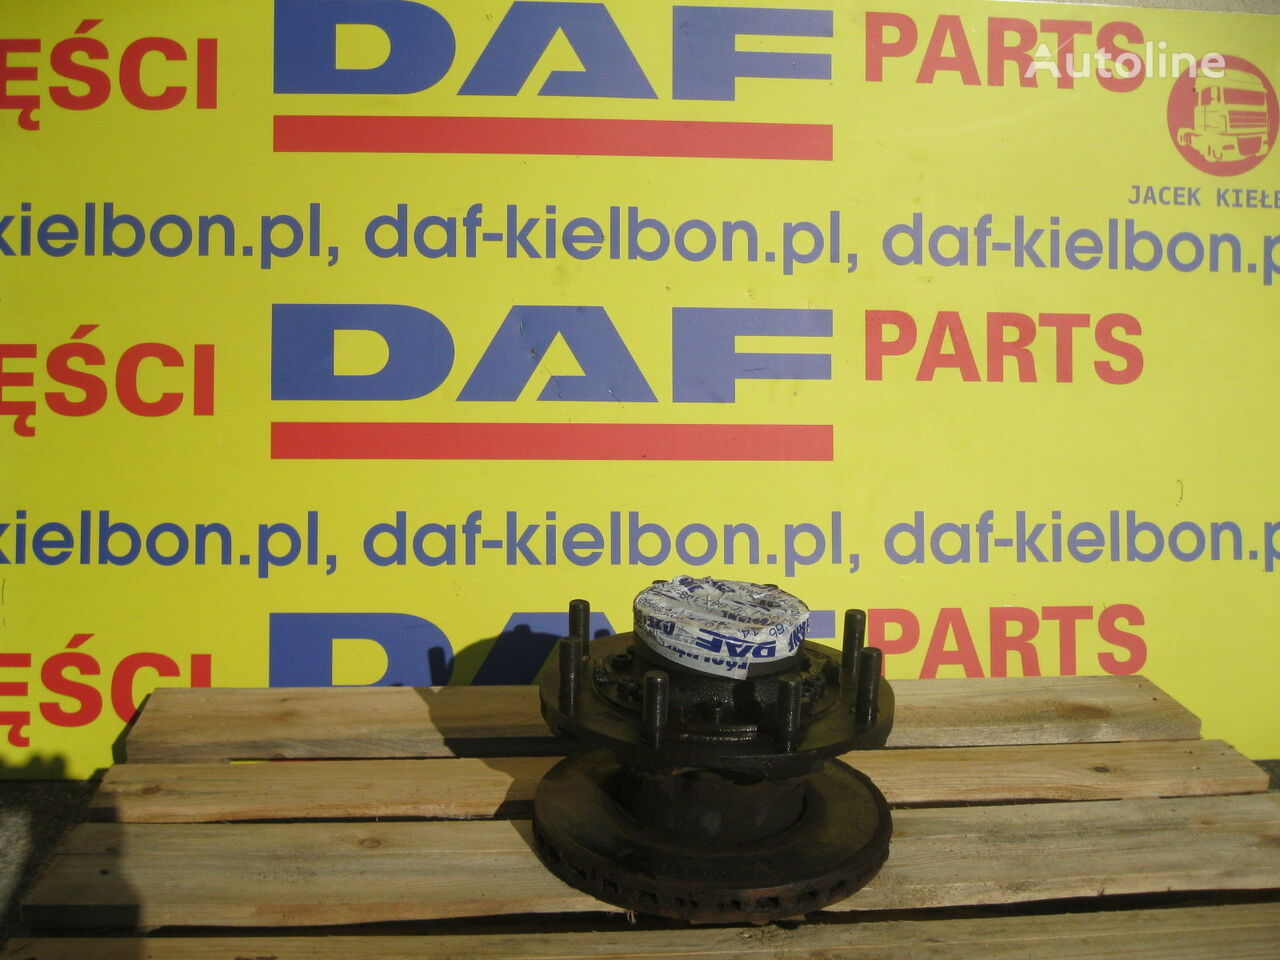 TYLNA TYŁ wheel hub for DAF LF 45/55 truck